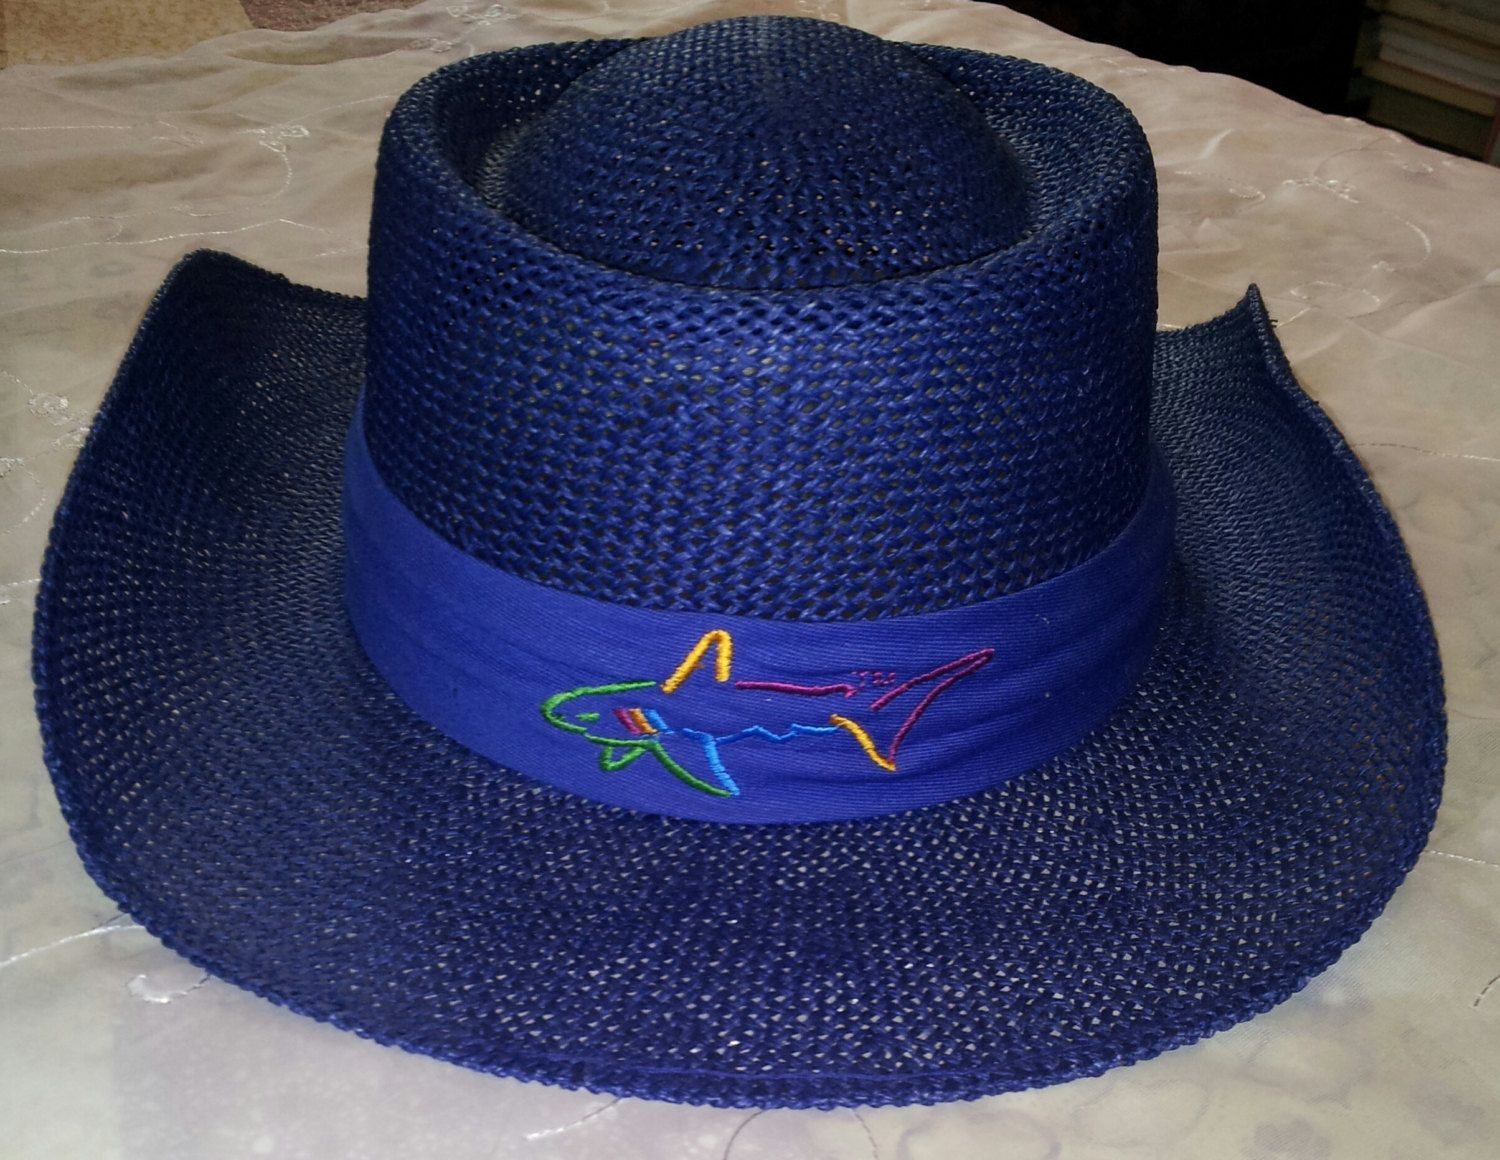 One Of A Kind Navy Blue Colored Straw Hat Worn By Greg Norman In A Reebok Shoot He Is Known To Only Wear Black Beige Or Wearing Black Beige Navy Blue